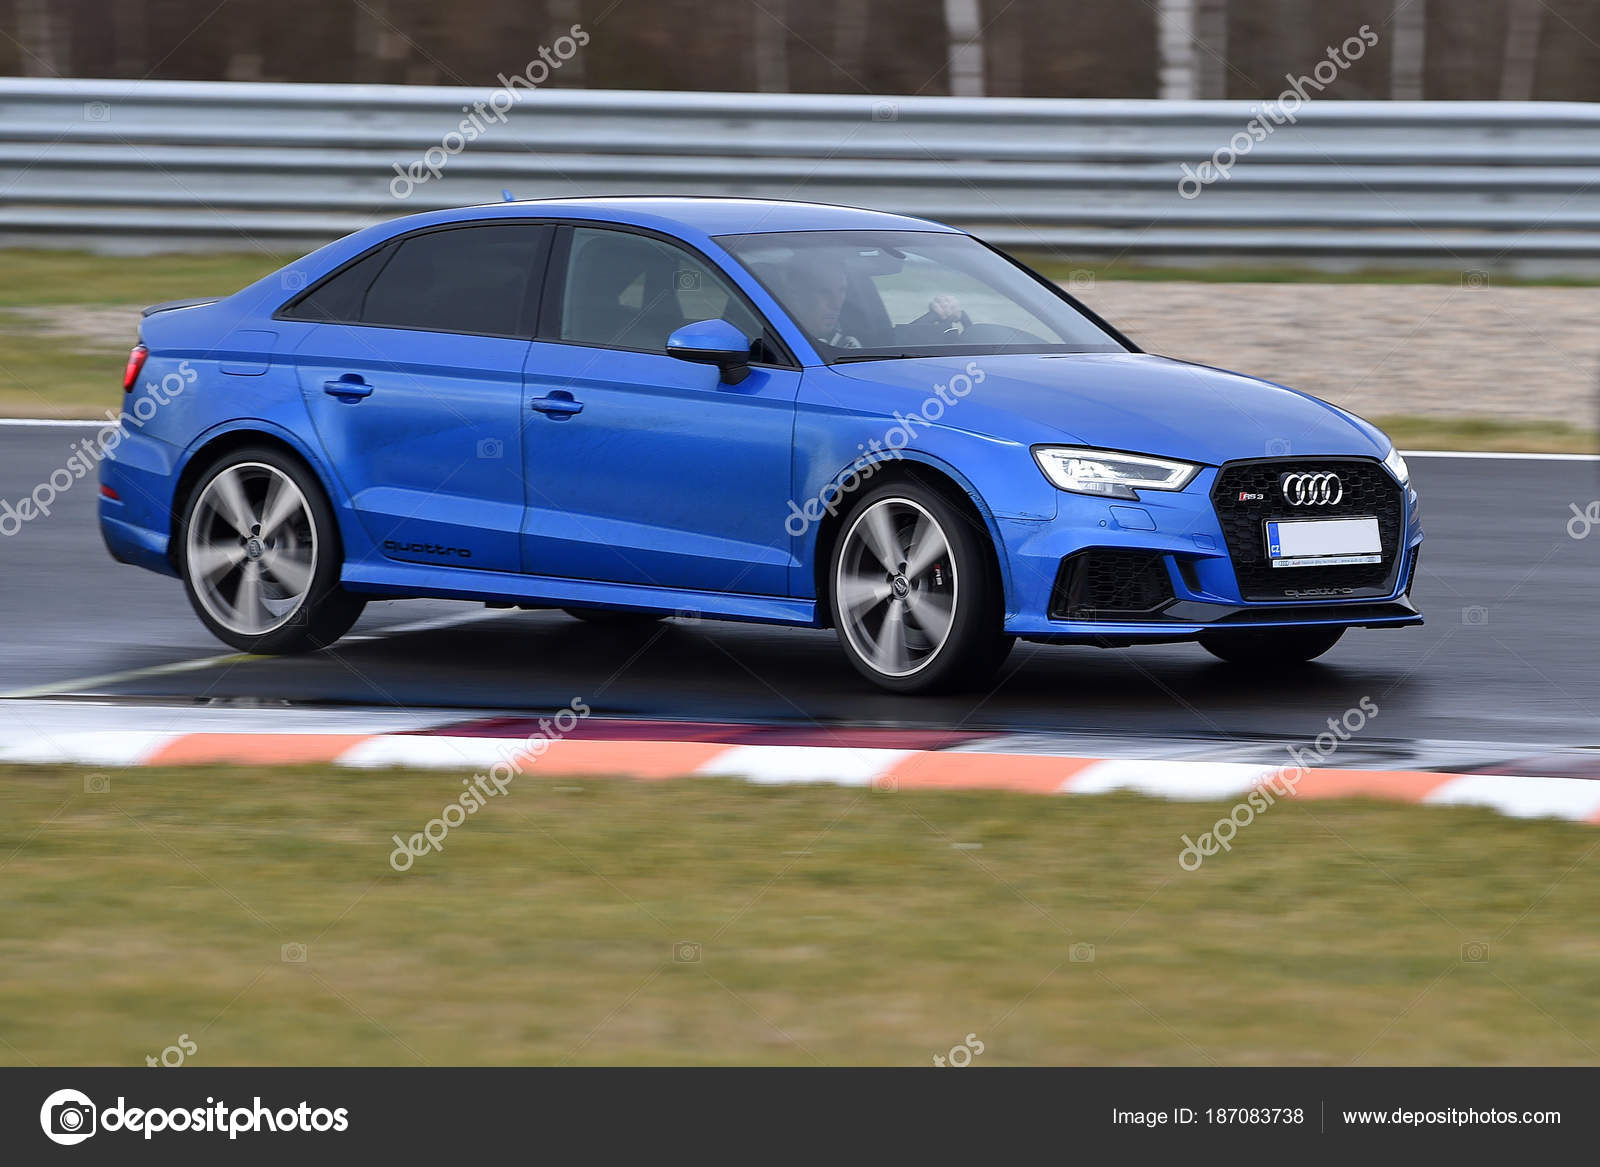 Rs3 Download Most Czech Republic January 2018 Audi Rs3 Most Czech Republic